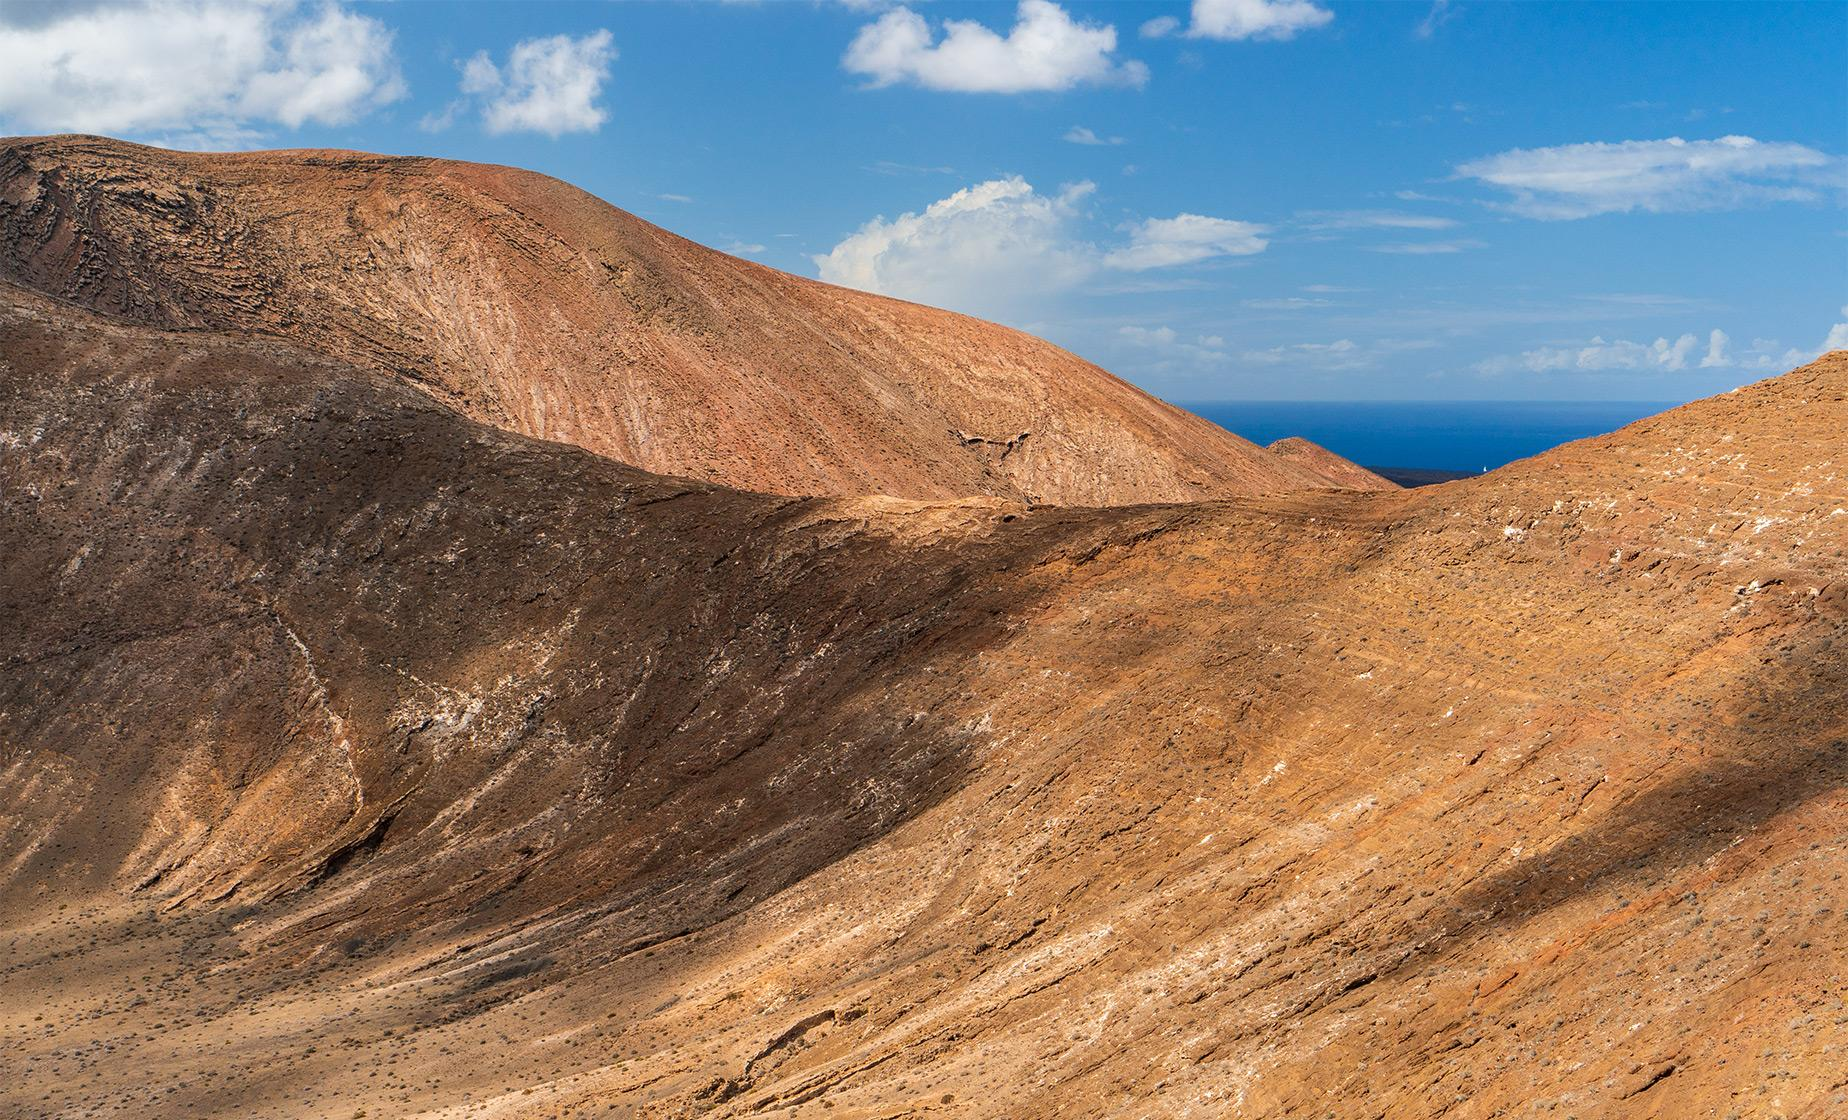 Trekking the Moonscape of Lanzarote